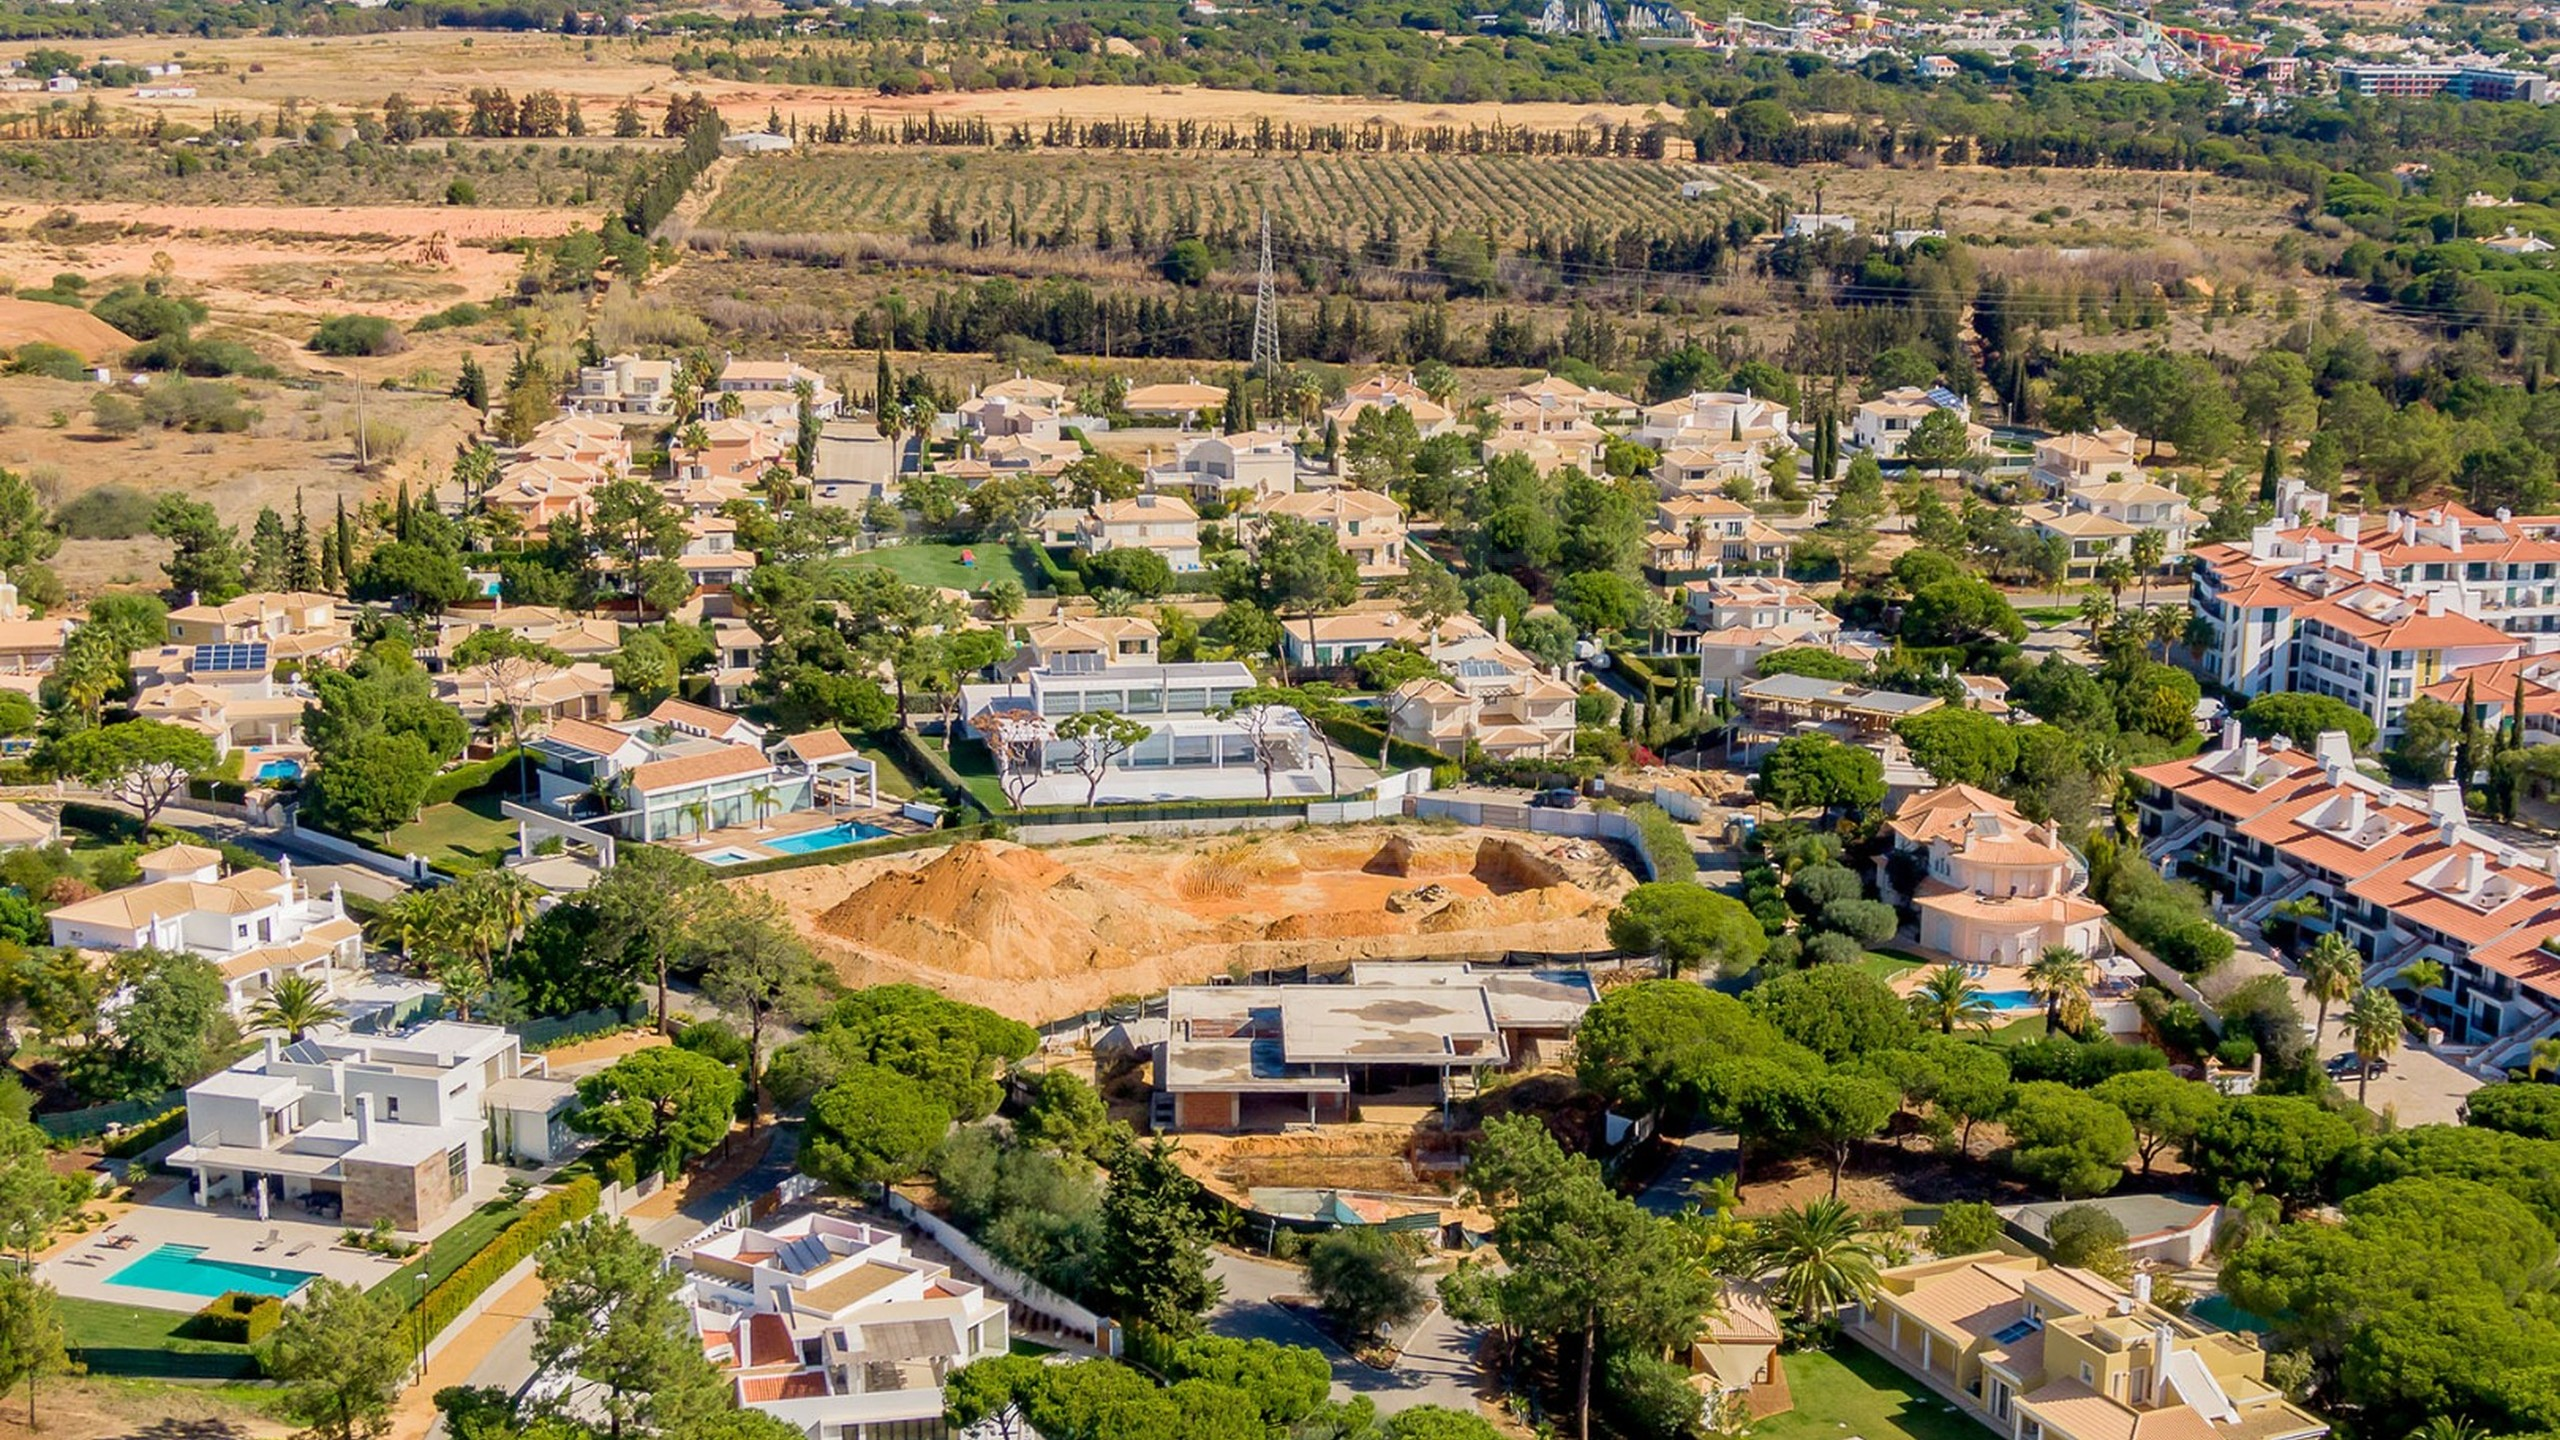 Villa under construction for sale in Algarve